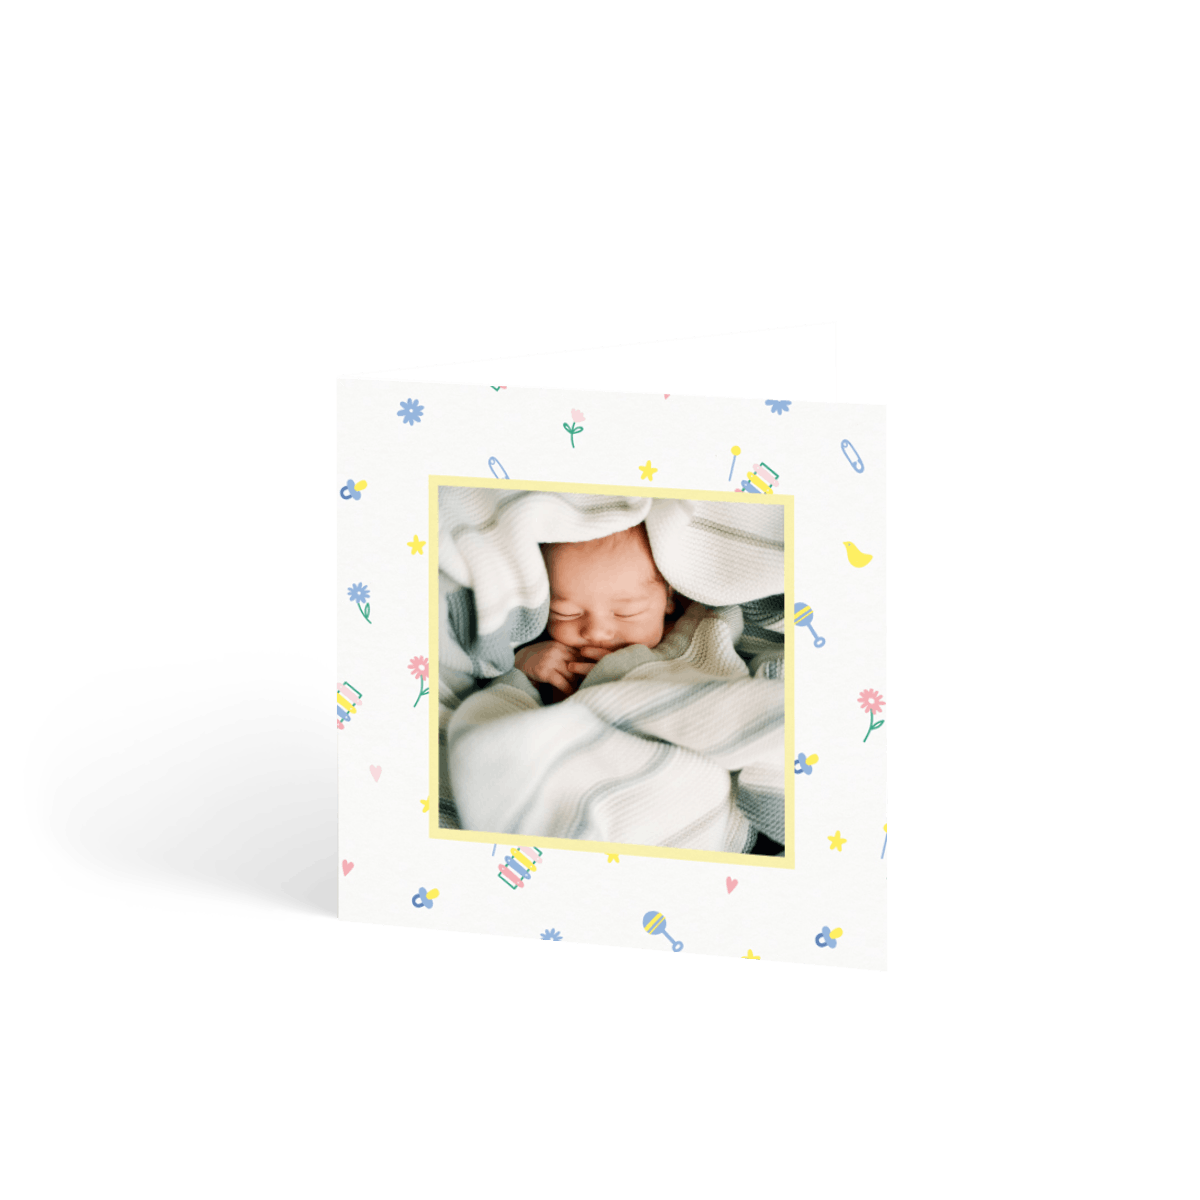 Https%3a%2f%2fwww.papier.com%2fproduct image%2f76021%2f16%2fbaby basics 17825 front 1557954540.png?ixlib=rb 1.1